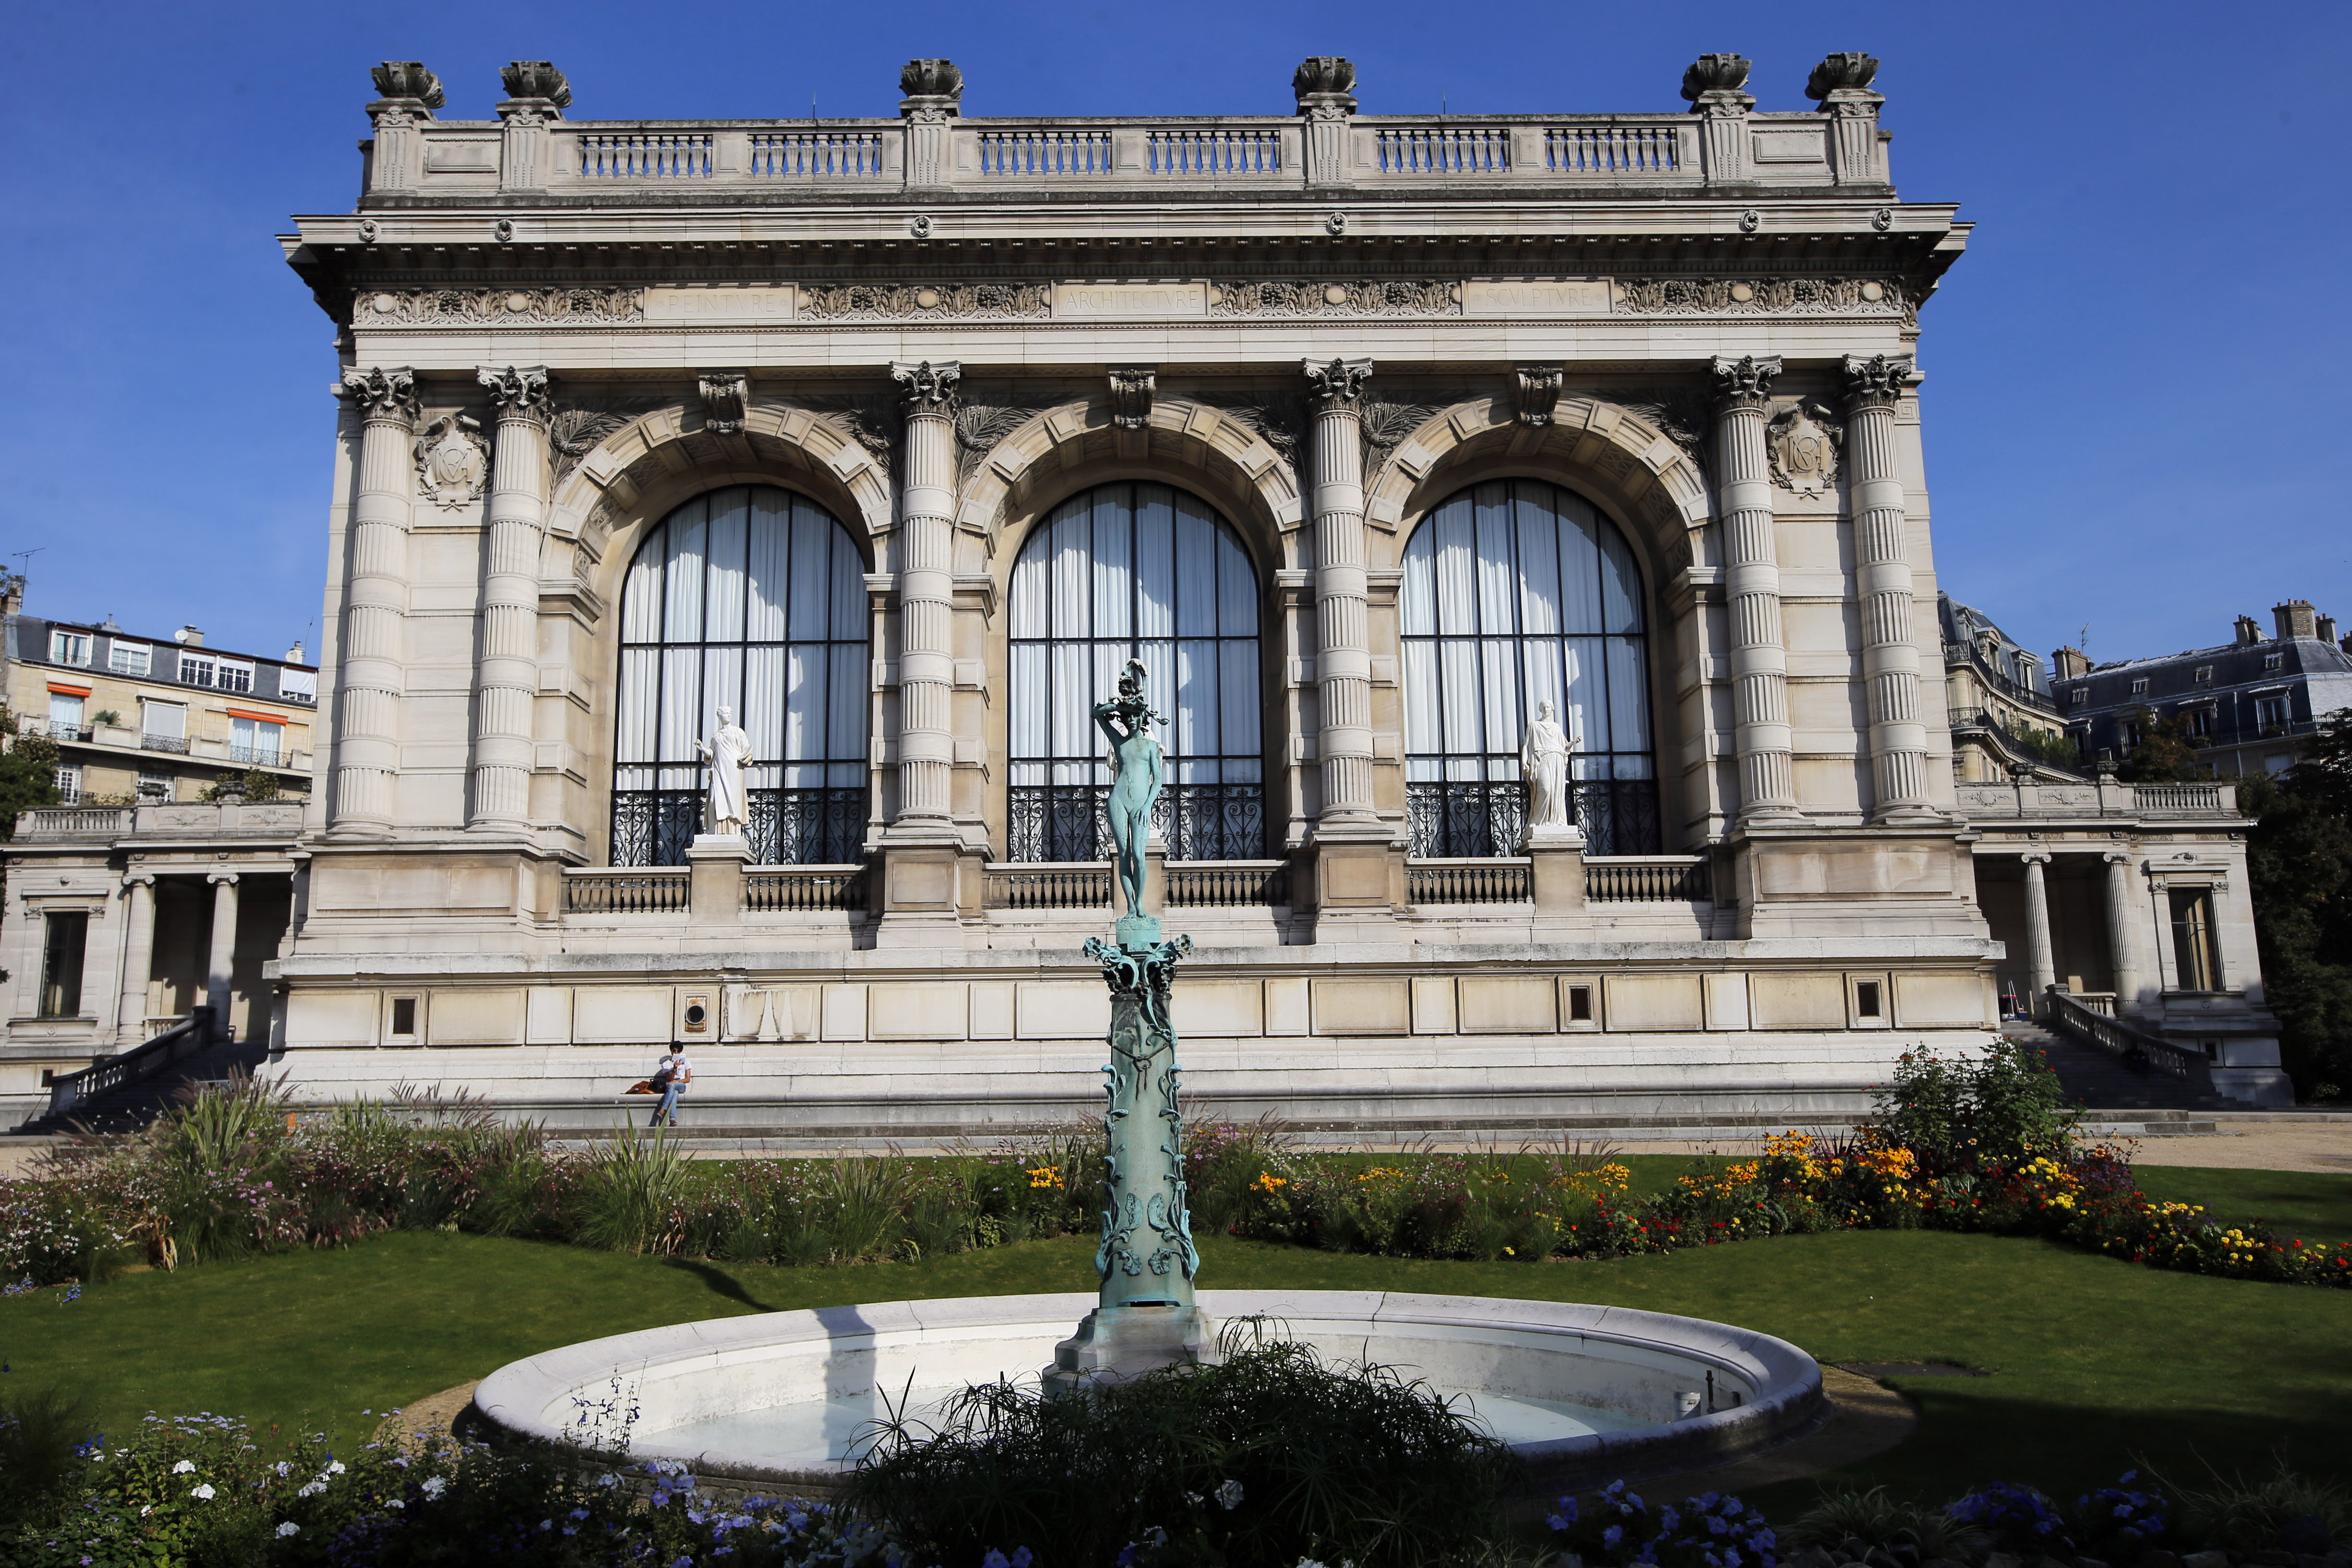 An exterior view from the garden of the Galliera Museum in Paris.